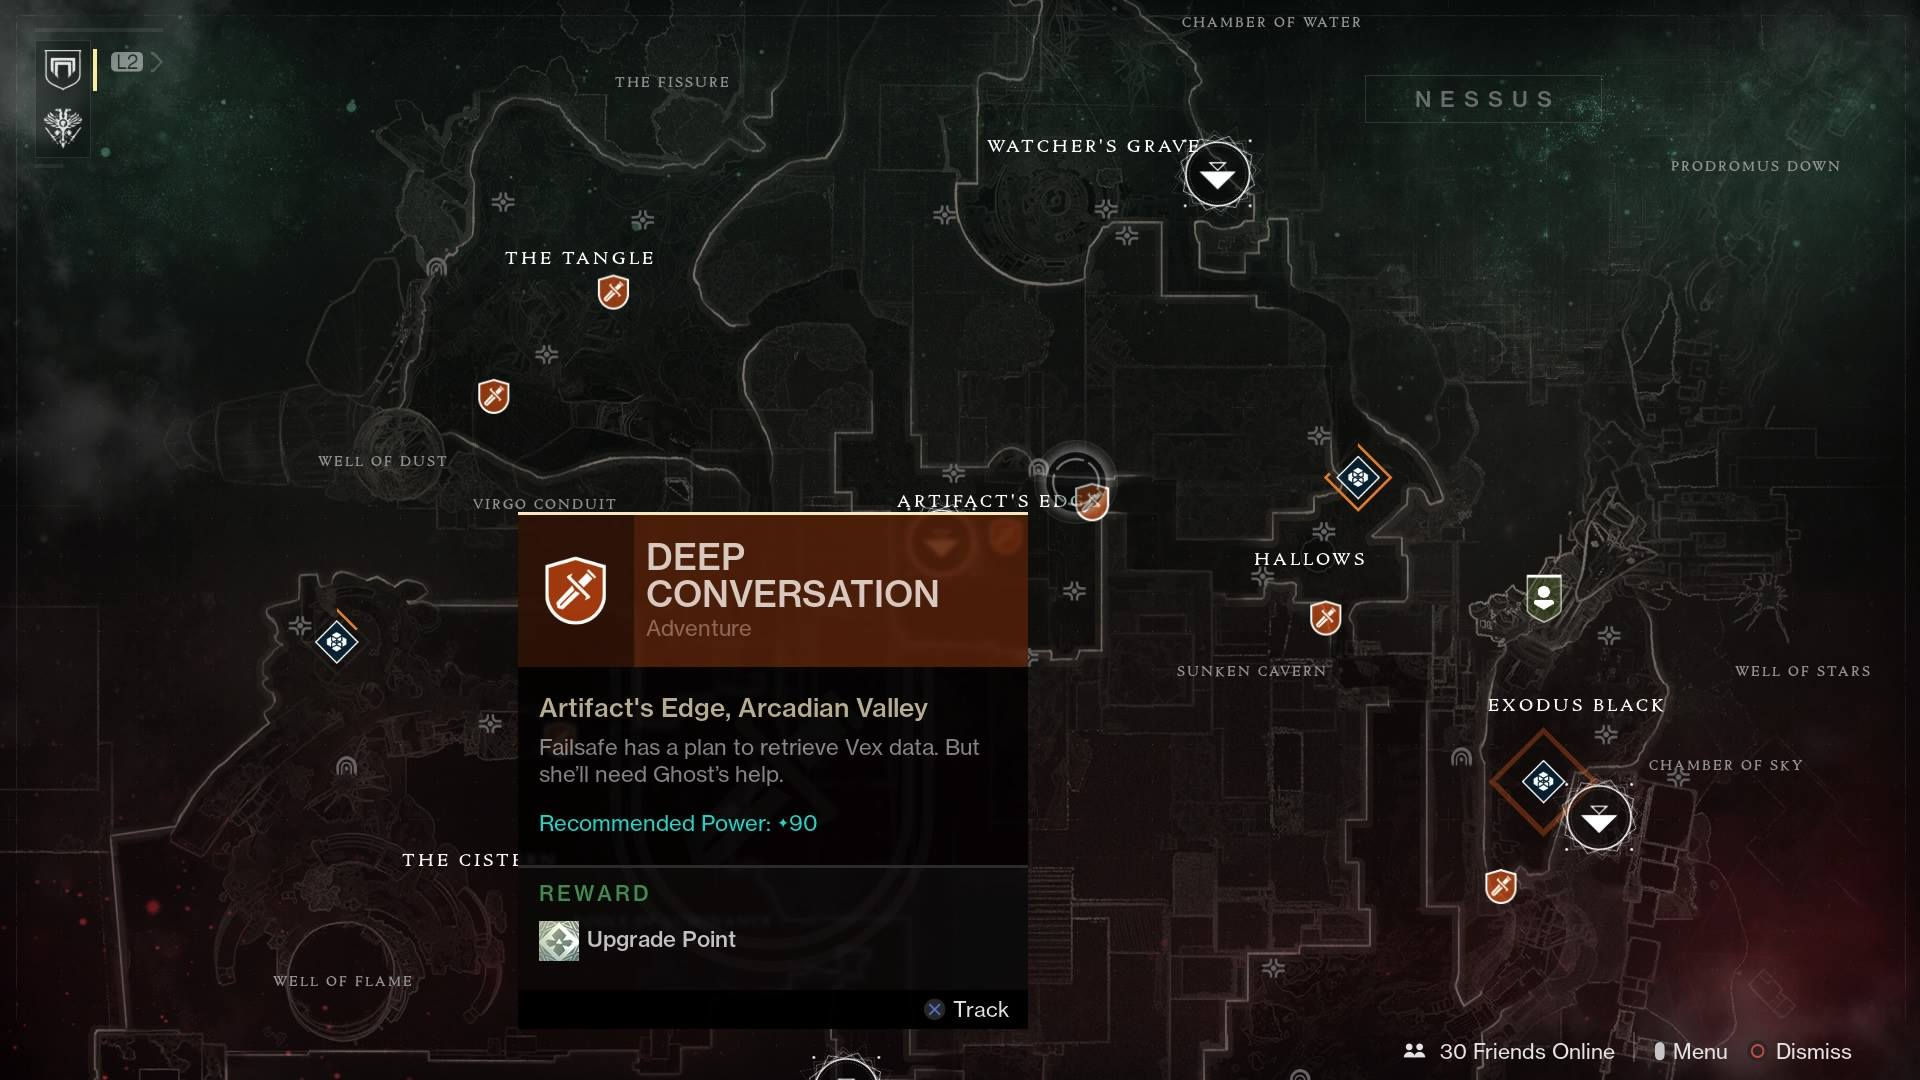 Destiny 2 - Map